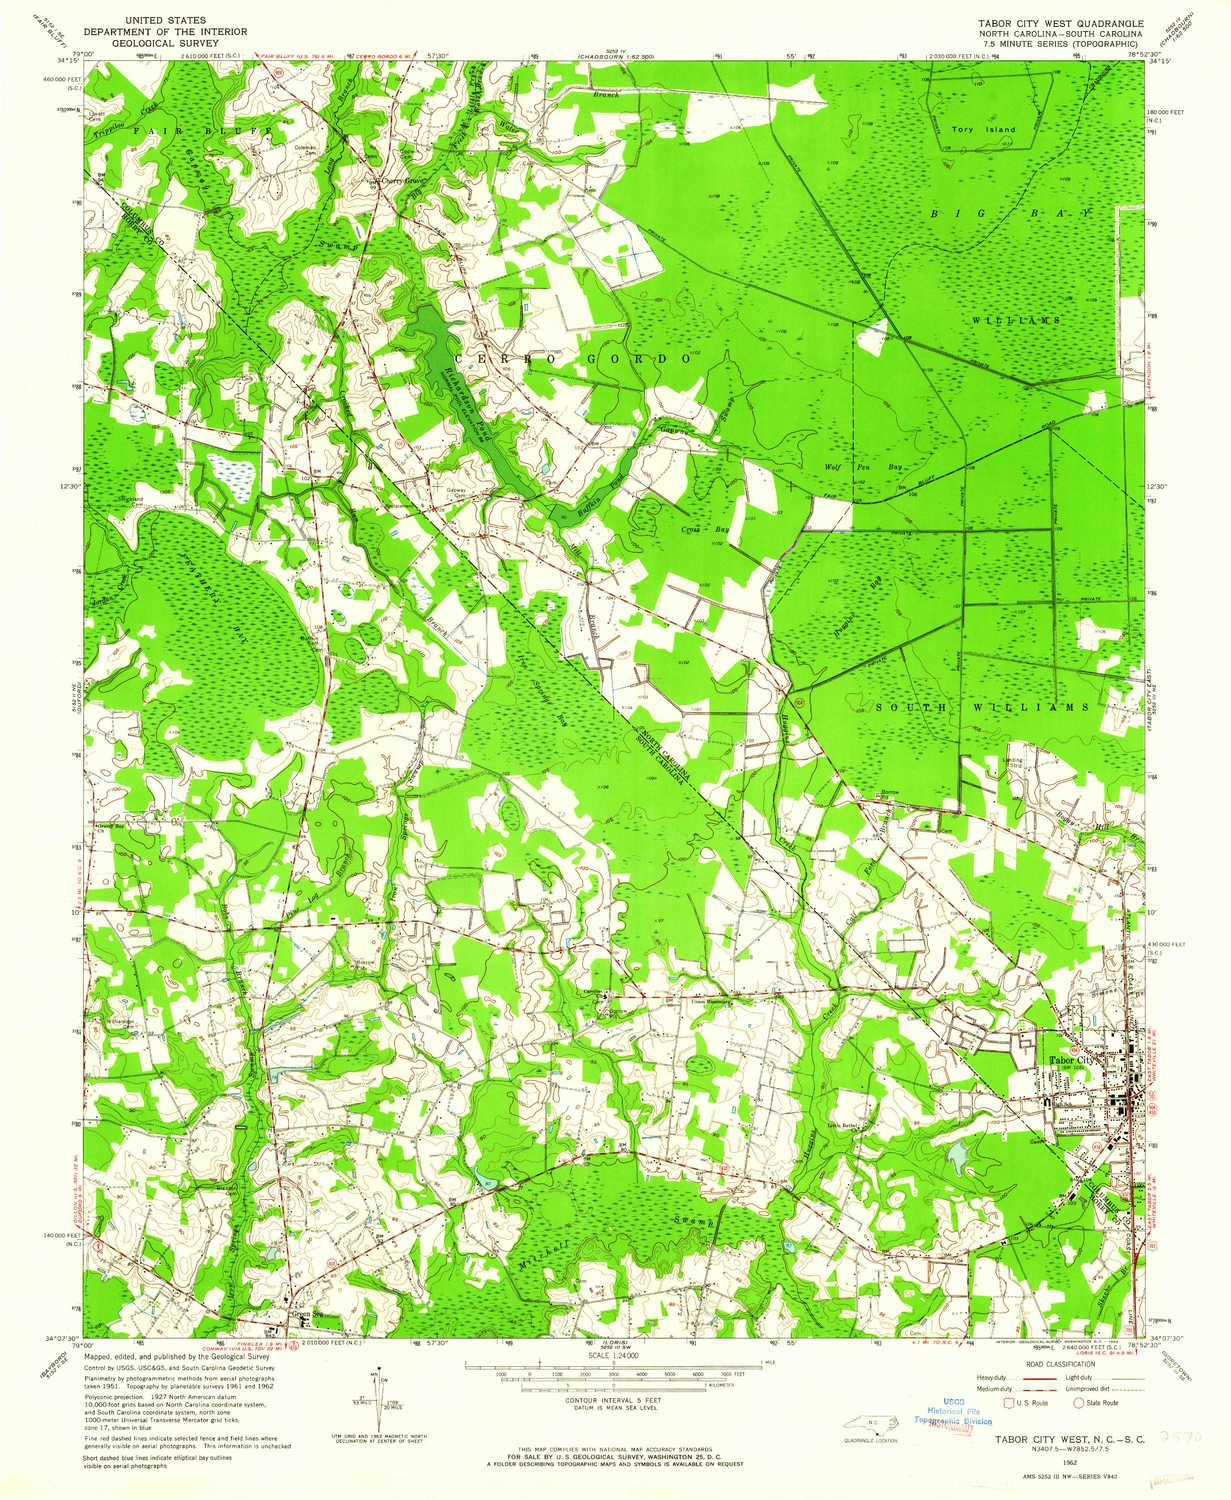 Tabor City Nc Map.Amazon Com Yellowmaps Tabor City West Nc Topo Map 1 24000 Scale